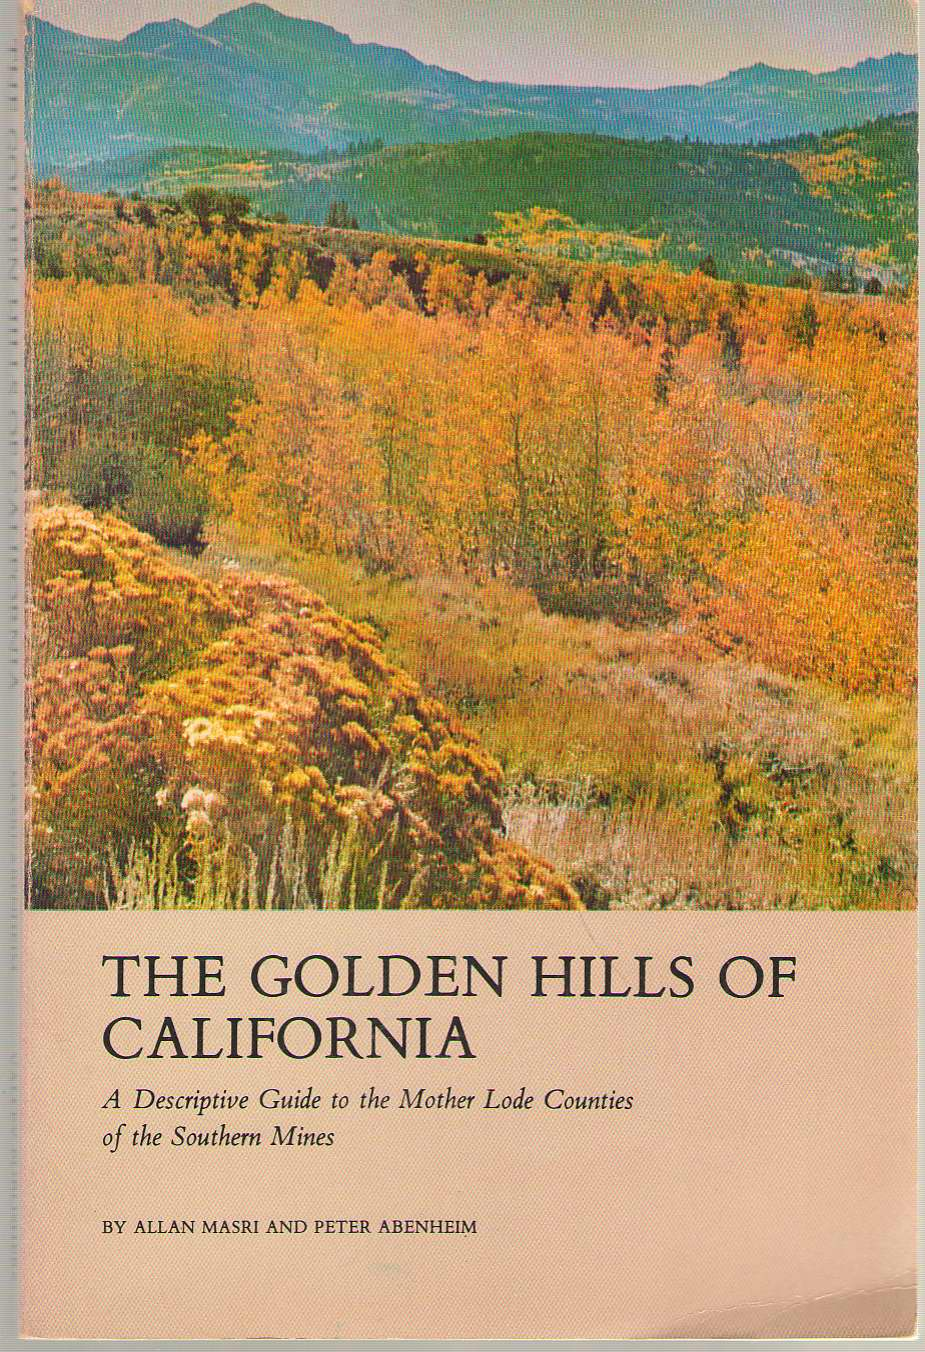 The Golden Hills Of California A Descriptive Guide to the Mother Lode Counties of the Southern Mines, Masri, Allan